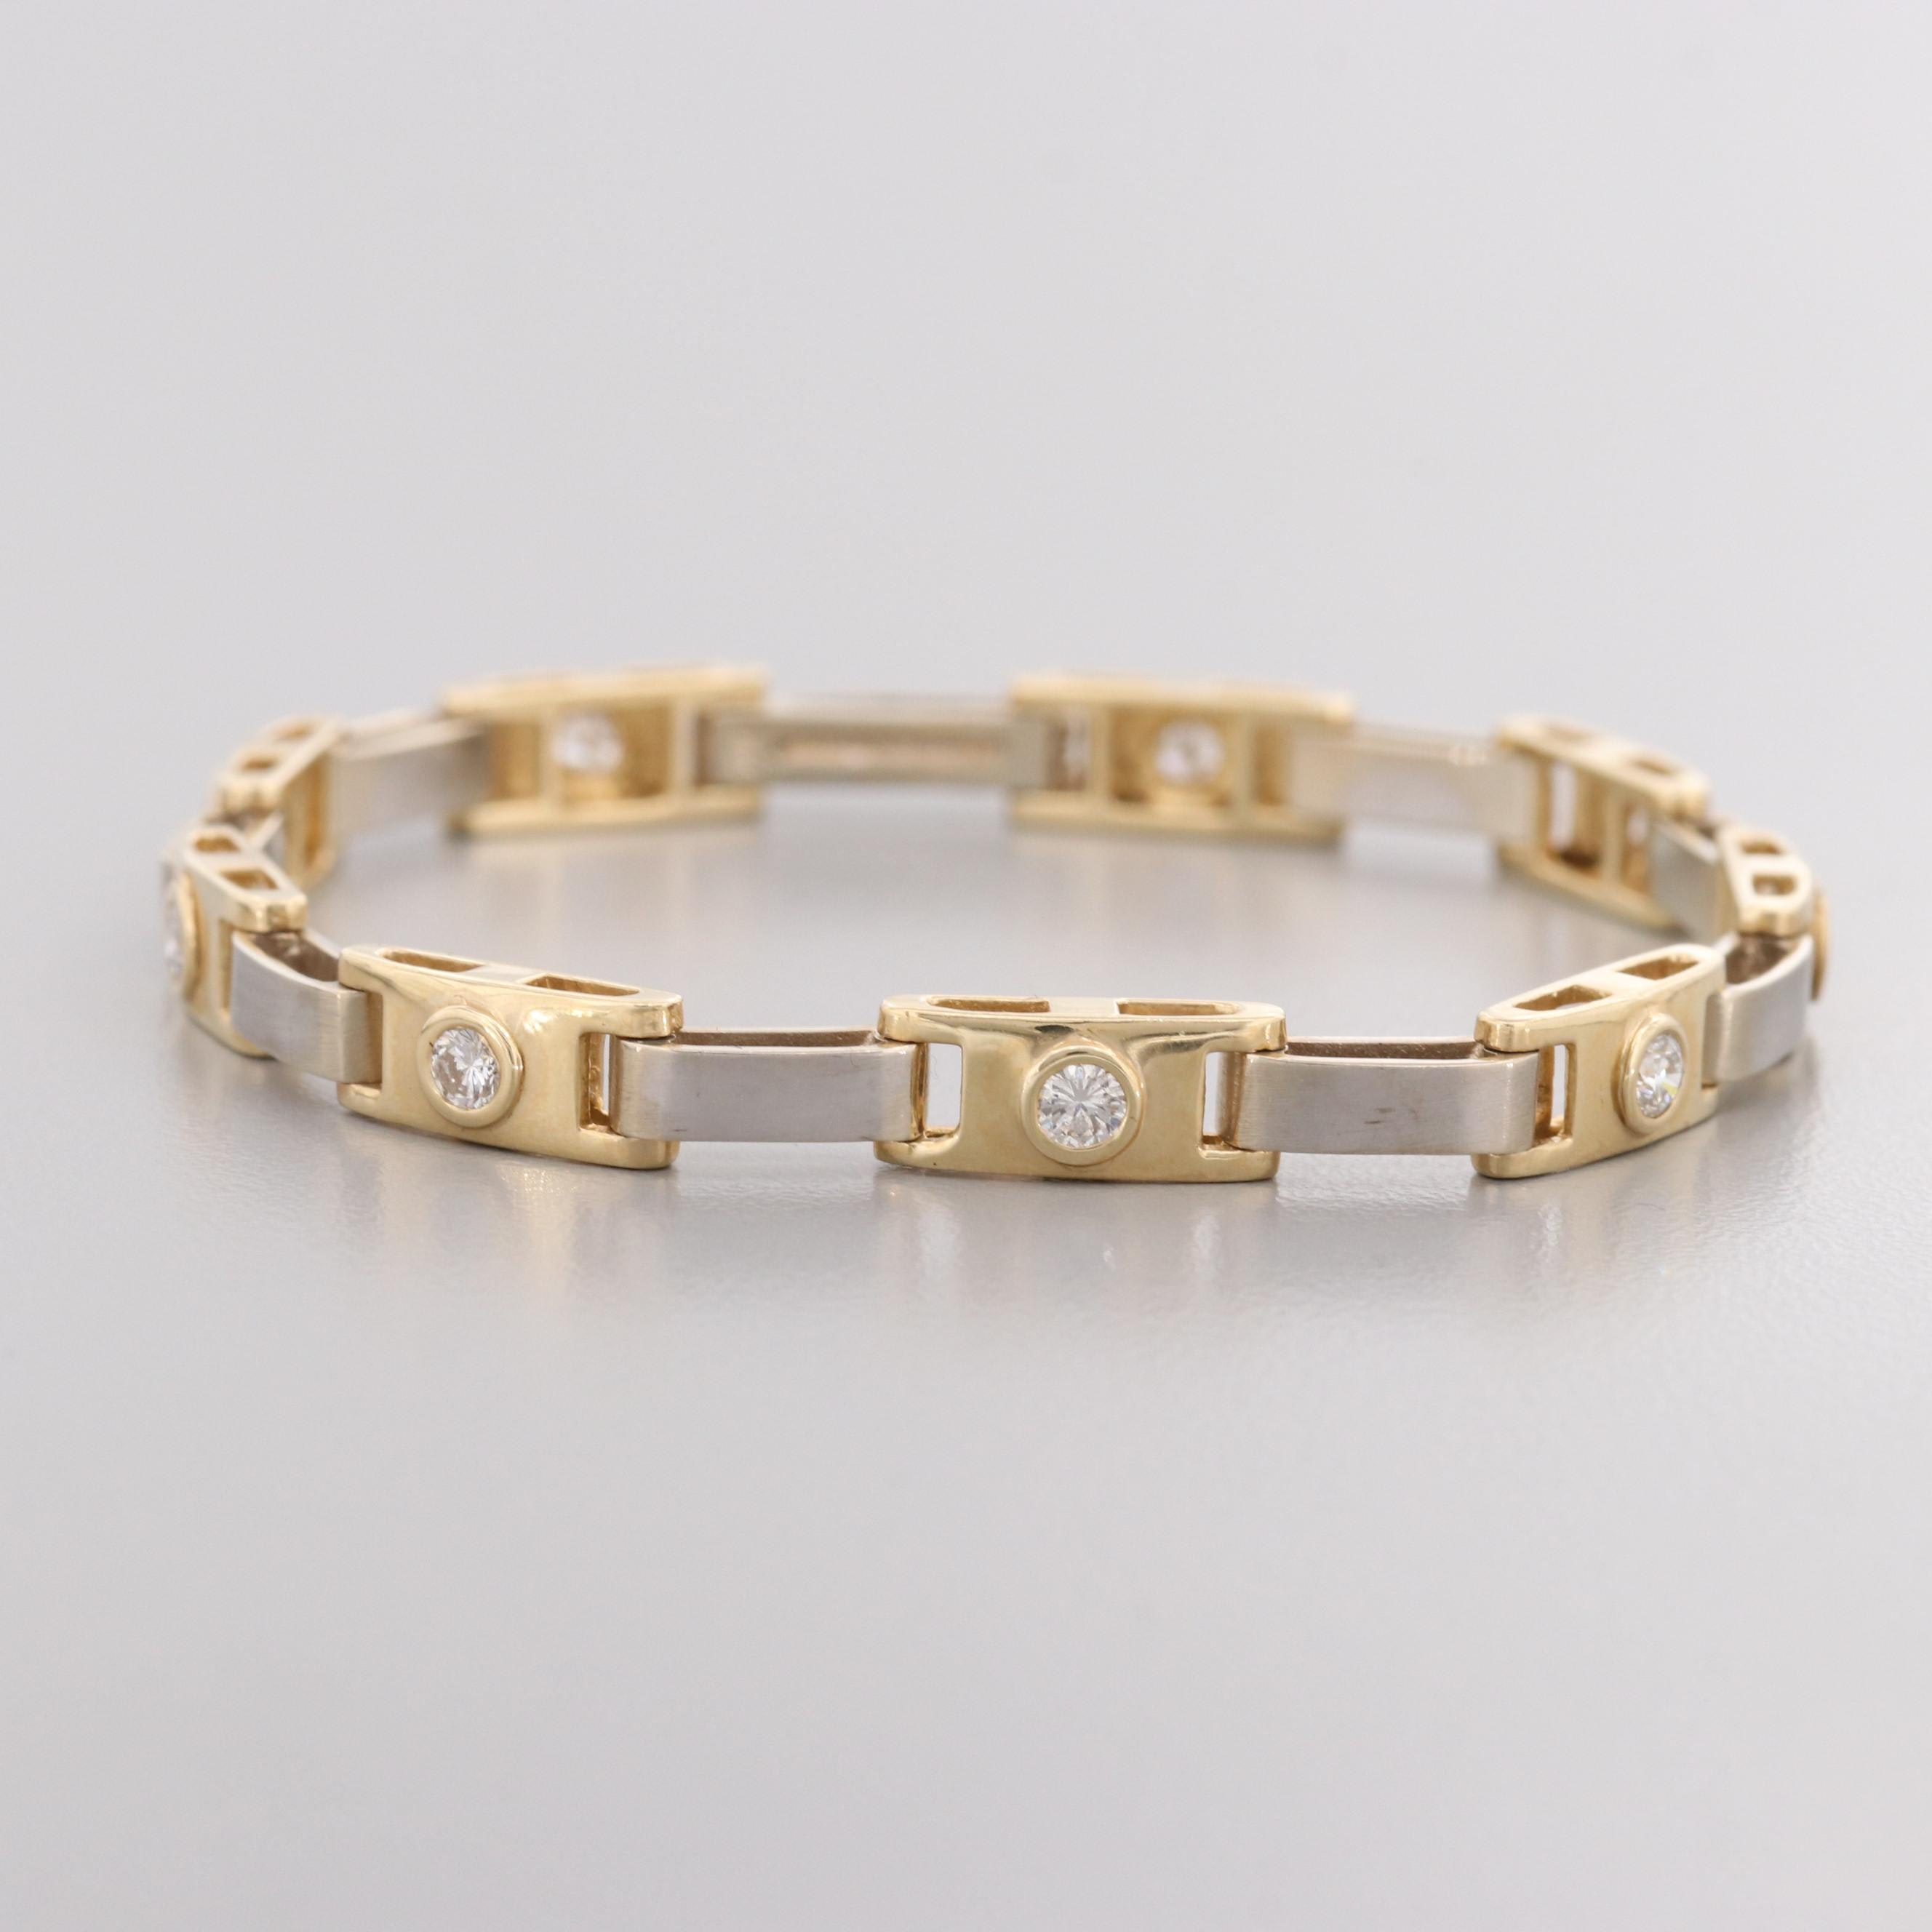 Contemporary 14K Yellow Gold Diamond Bracelet with Brushed White Gold Links